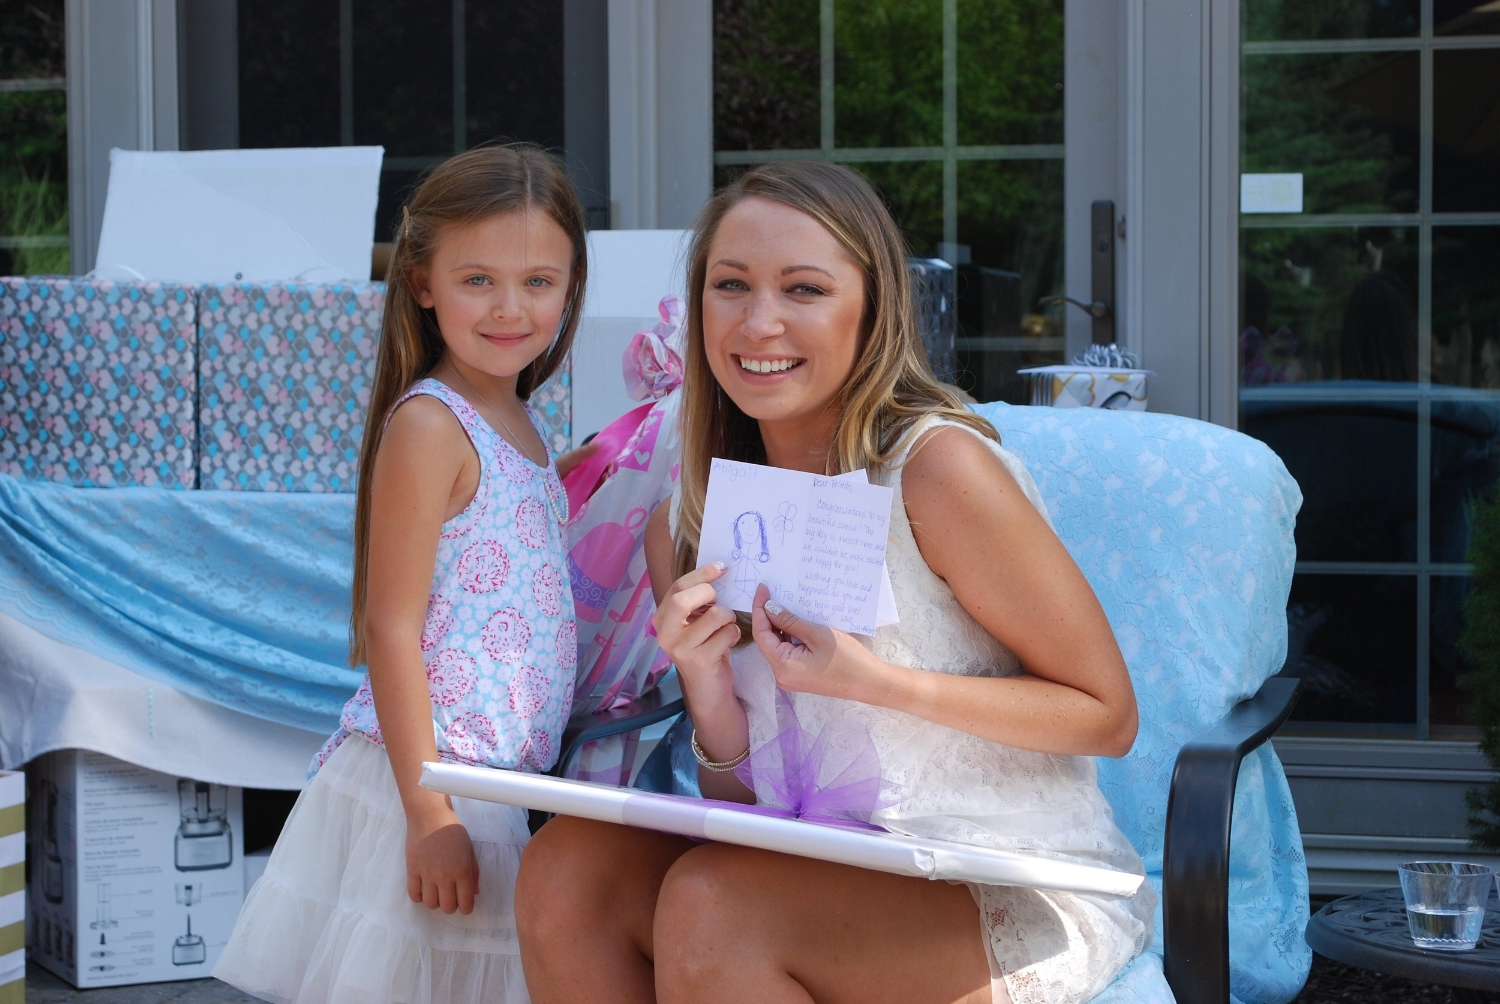 Abbey is Brielle's adorable flower girl. She was so delightful and helpful to the bride-to-be. She may also have a future in art as demonstrated with her beautiful illustration inside Brielle's shower card.